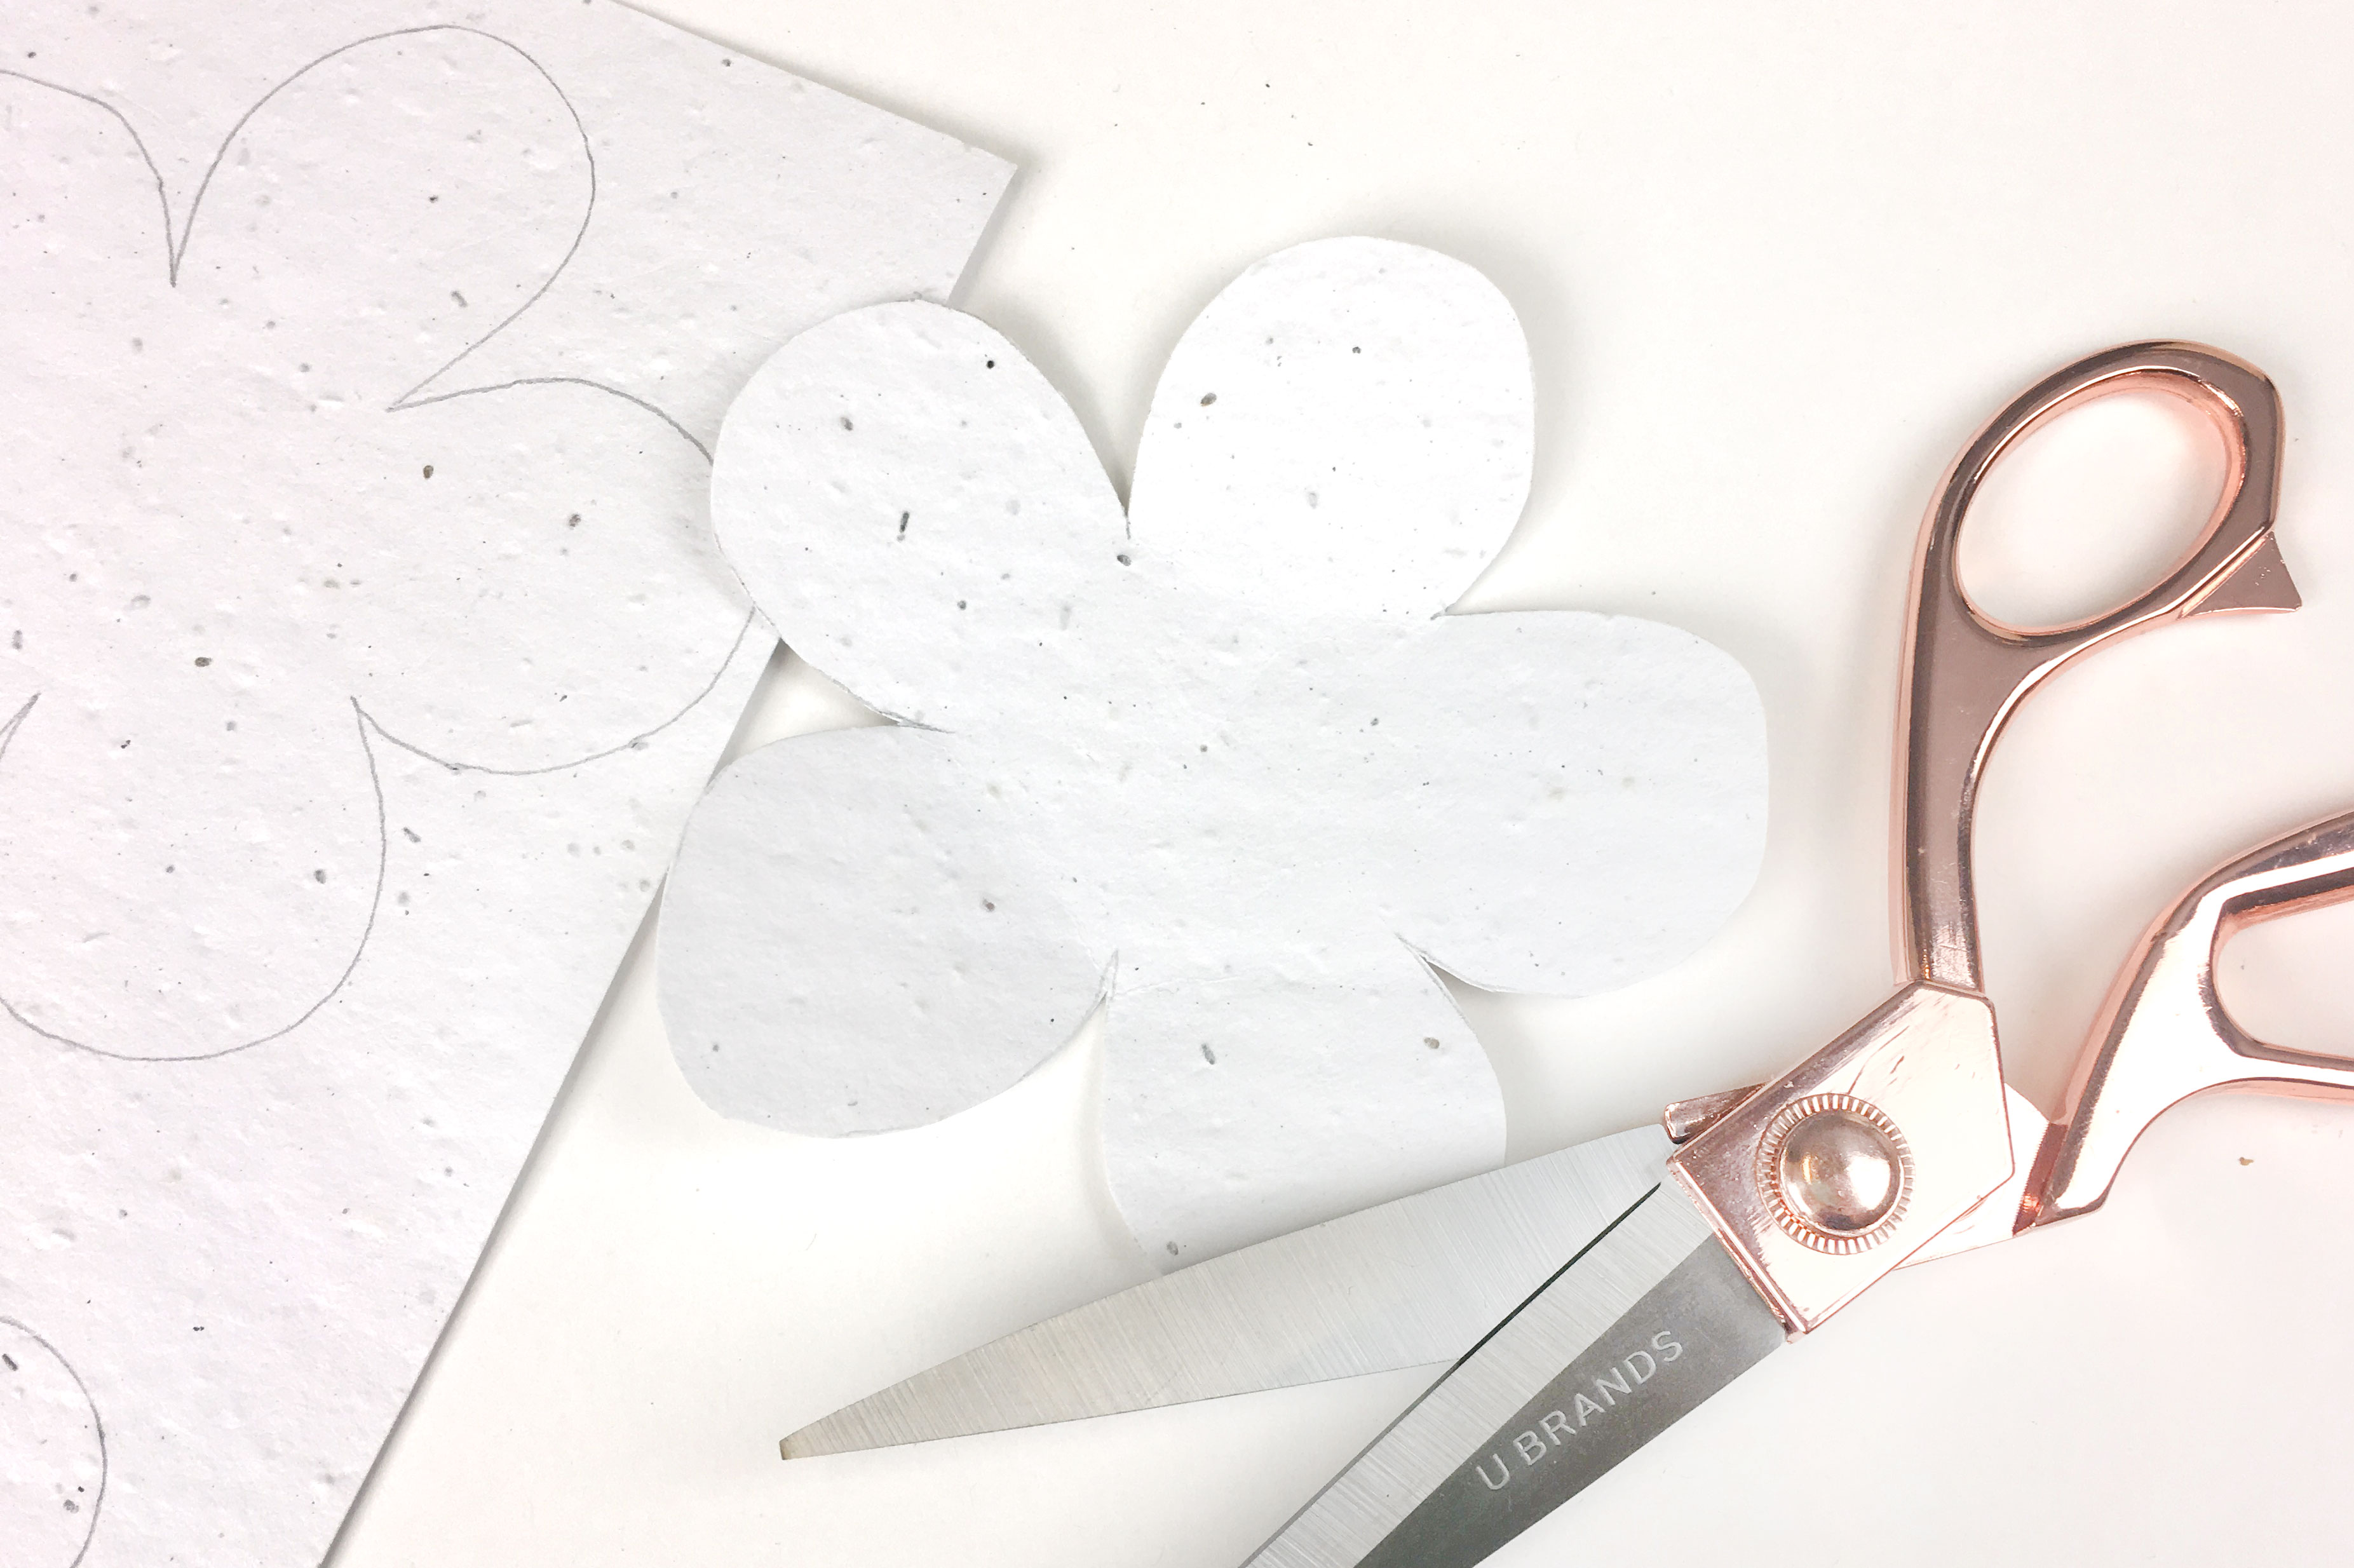 Learn the steps in this DIY craft tutorial for making hanging seed paper flower wall art!